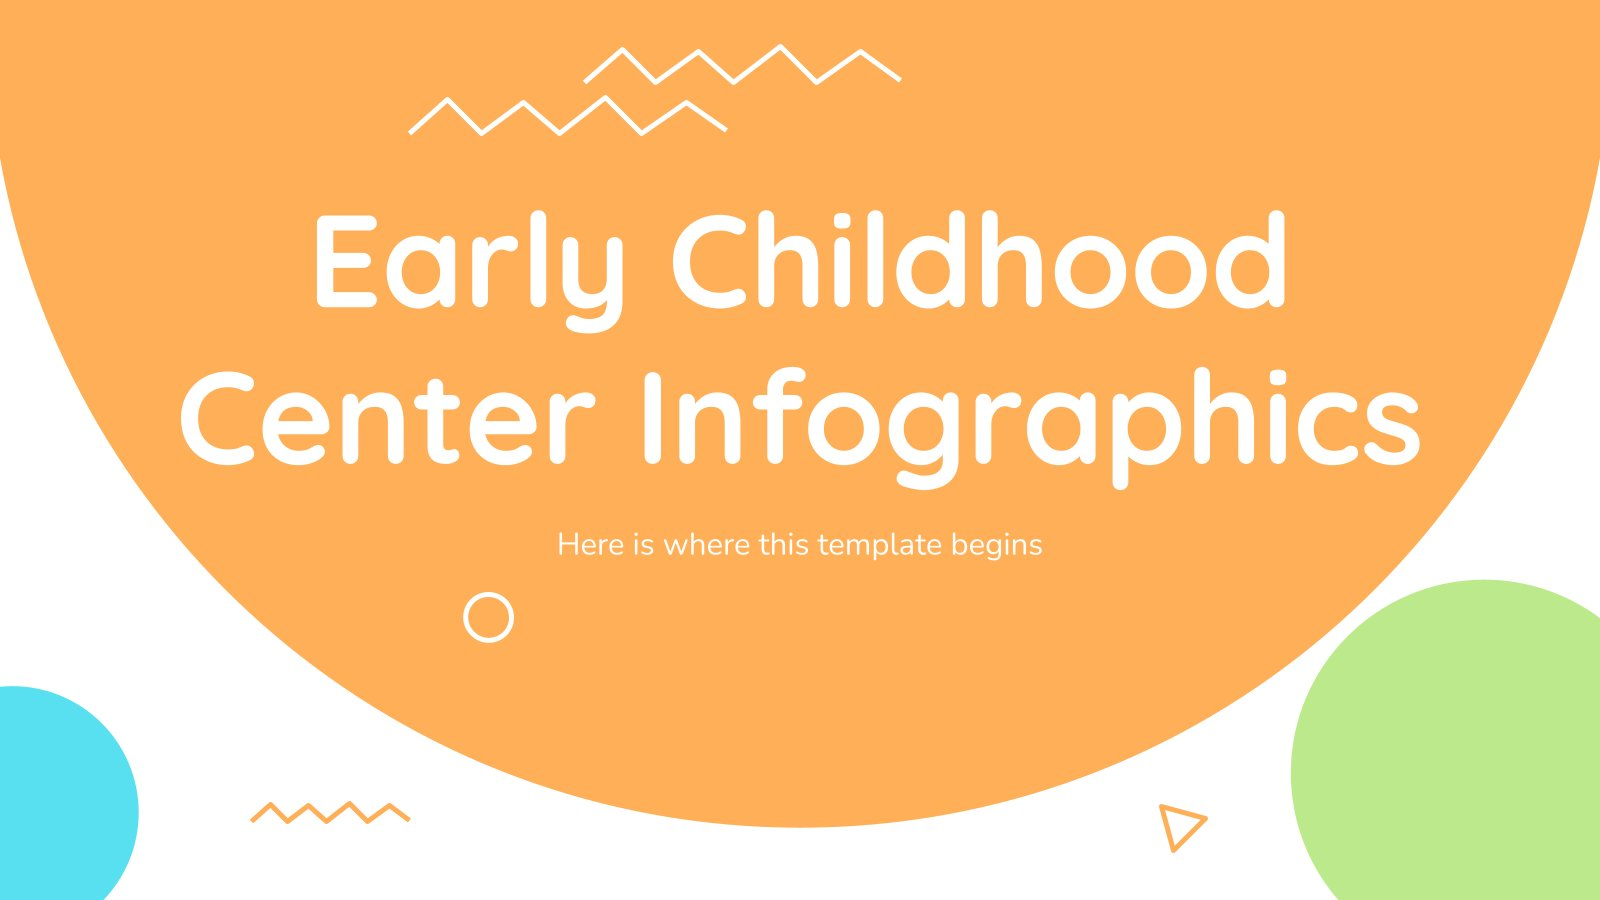 Early Childhood Center Infographics presentation template